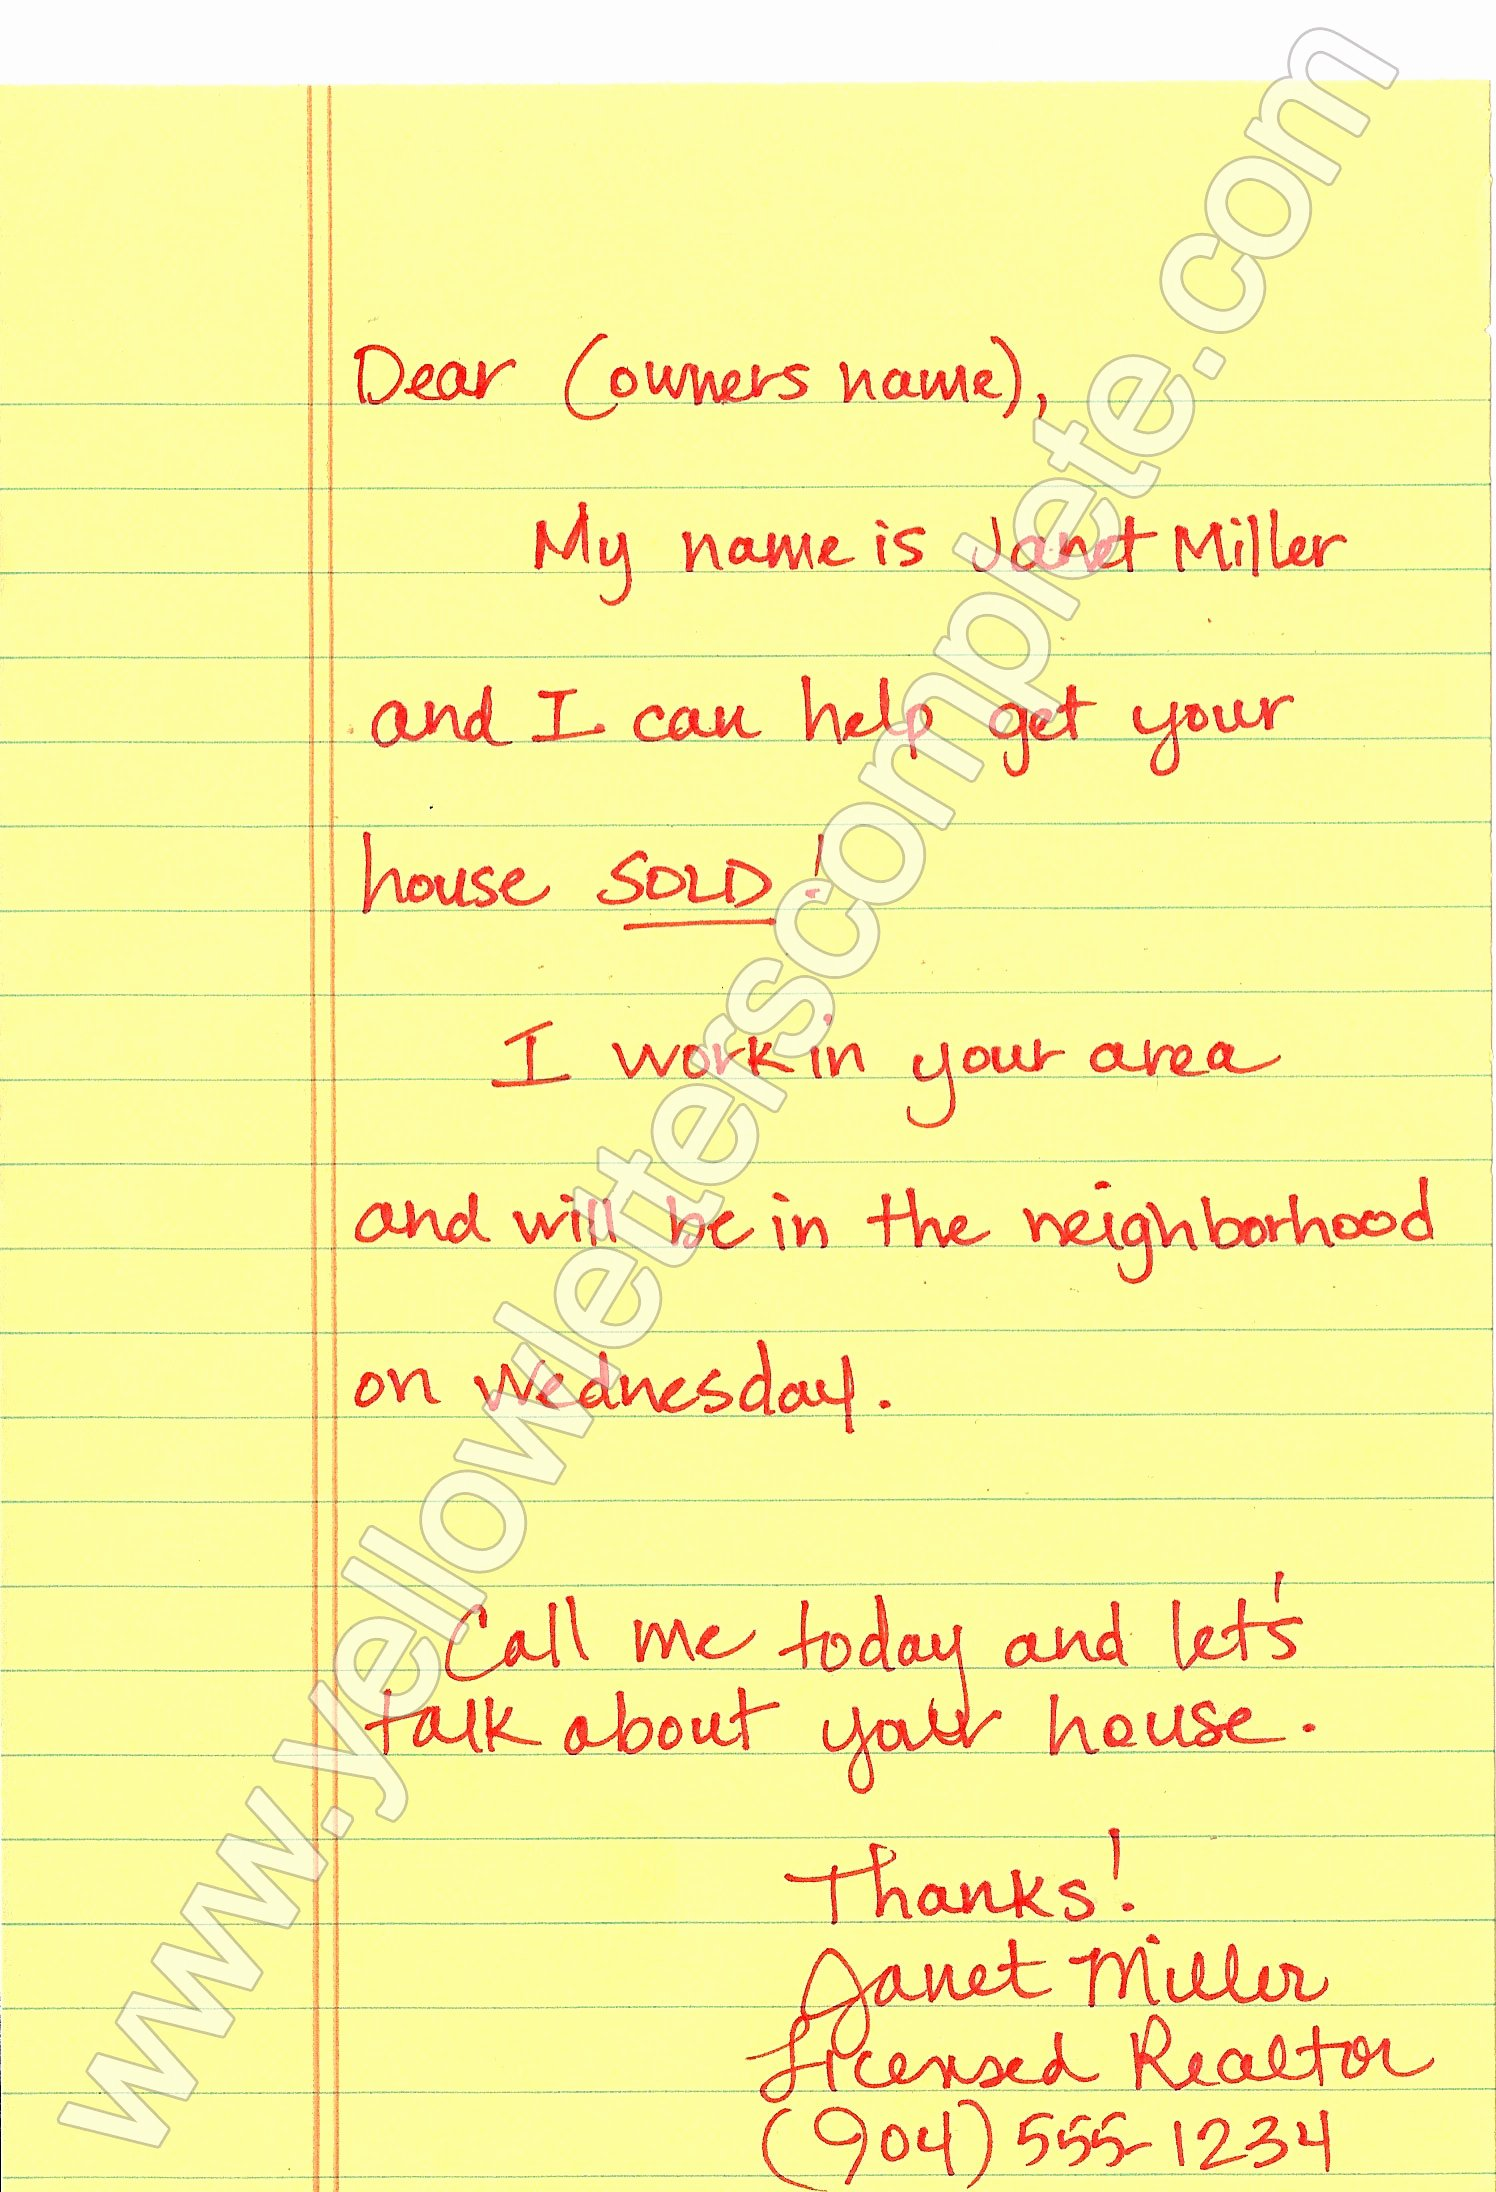 Real Estate Investor Letter Templates Best Of Yellow Letter Templates